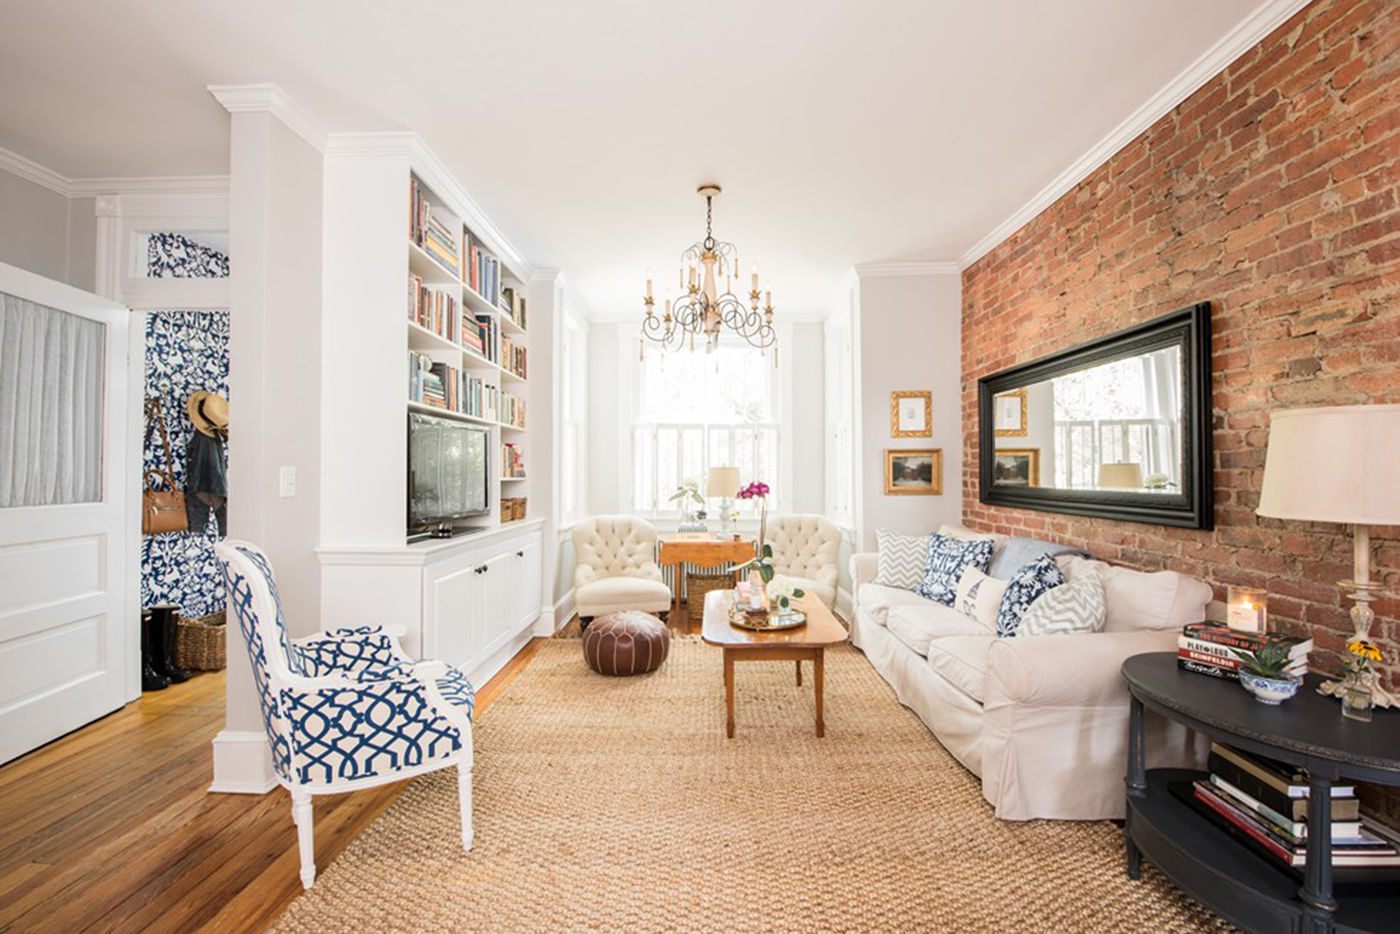 Meg And Glenn Hoburg Have Spent The Past 14 Years Renovating Their  Three Bedroom Rowhouse On Capitol Hill In Washington, D.C. They Had A Brick  Wall Exposed ...